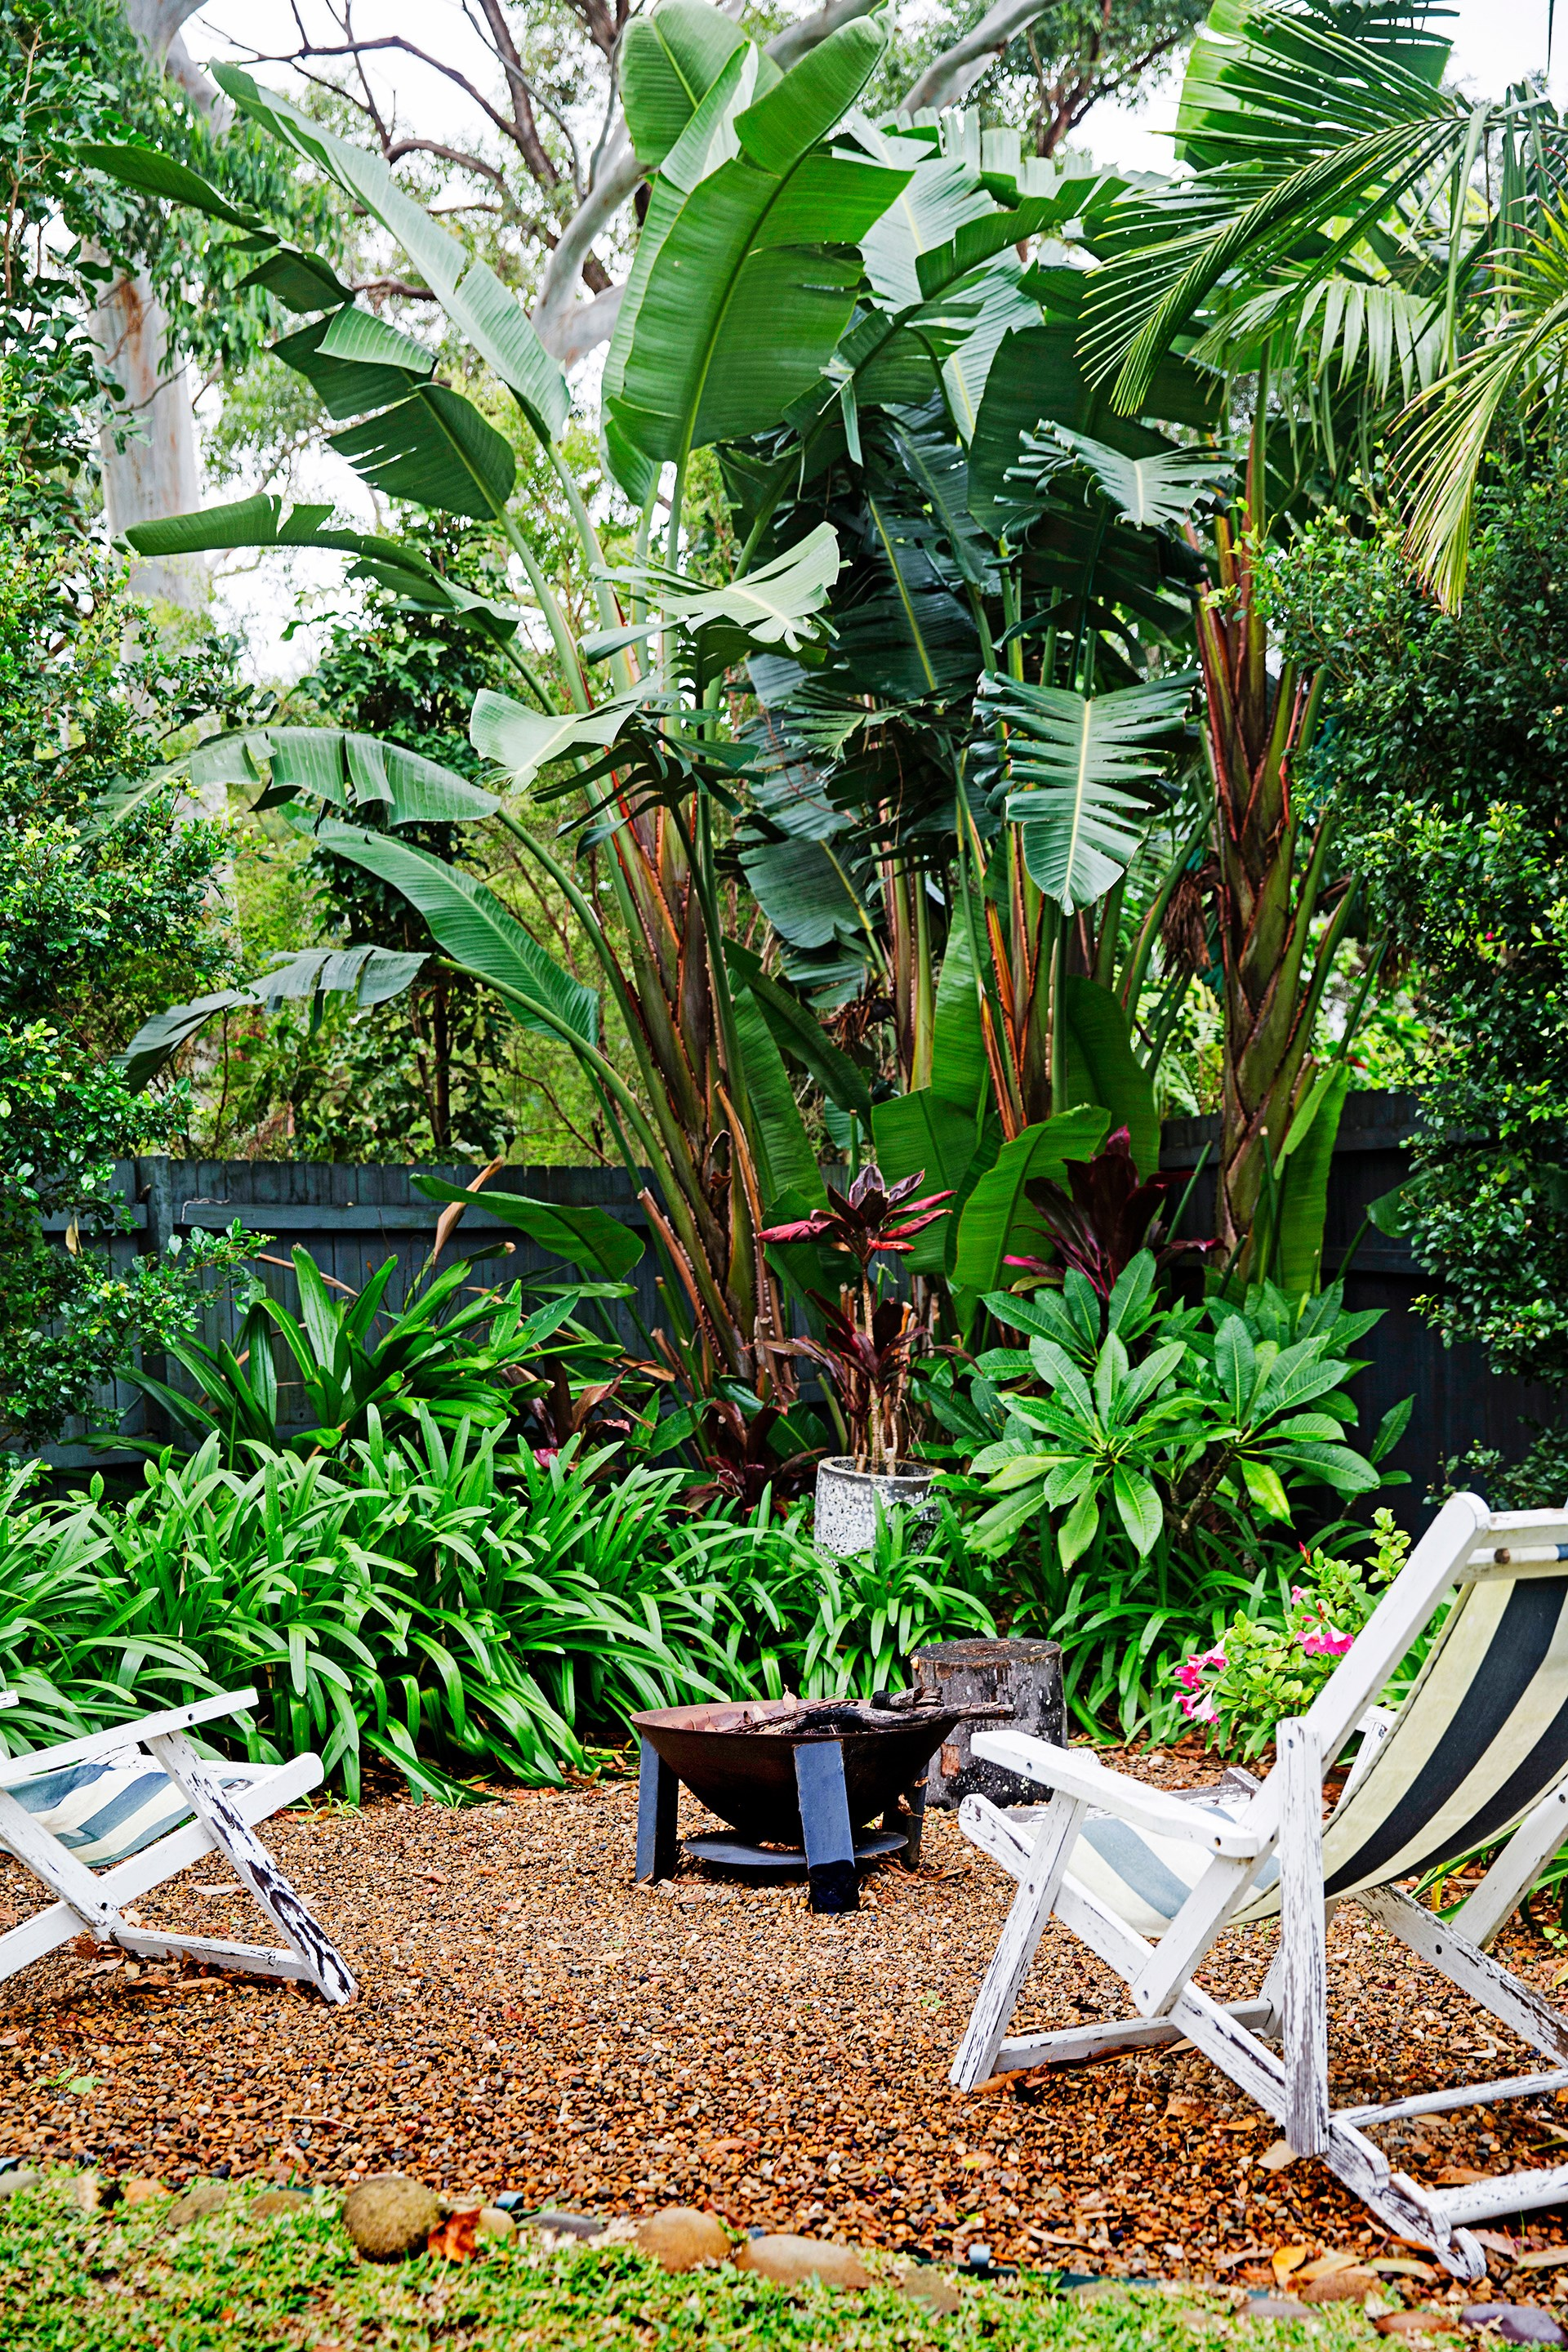 "**Create a focal point** – a central attraction to draw the eye allows you to have an 'unruly' approach to all other aspects of the garden. [Take a tour of this Balinese-inspired garden](http://www.homestolove.com.au/wendys-balinese-inspired-garden-1877|target=""_blank""). *Photo: James Henry*"